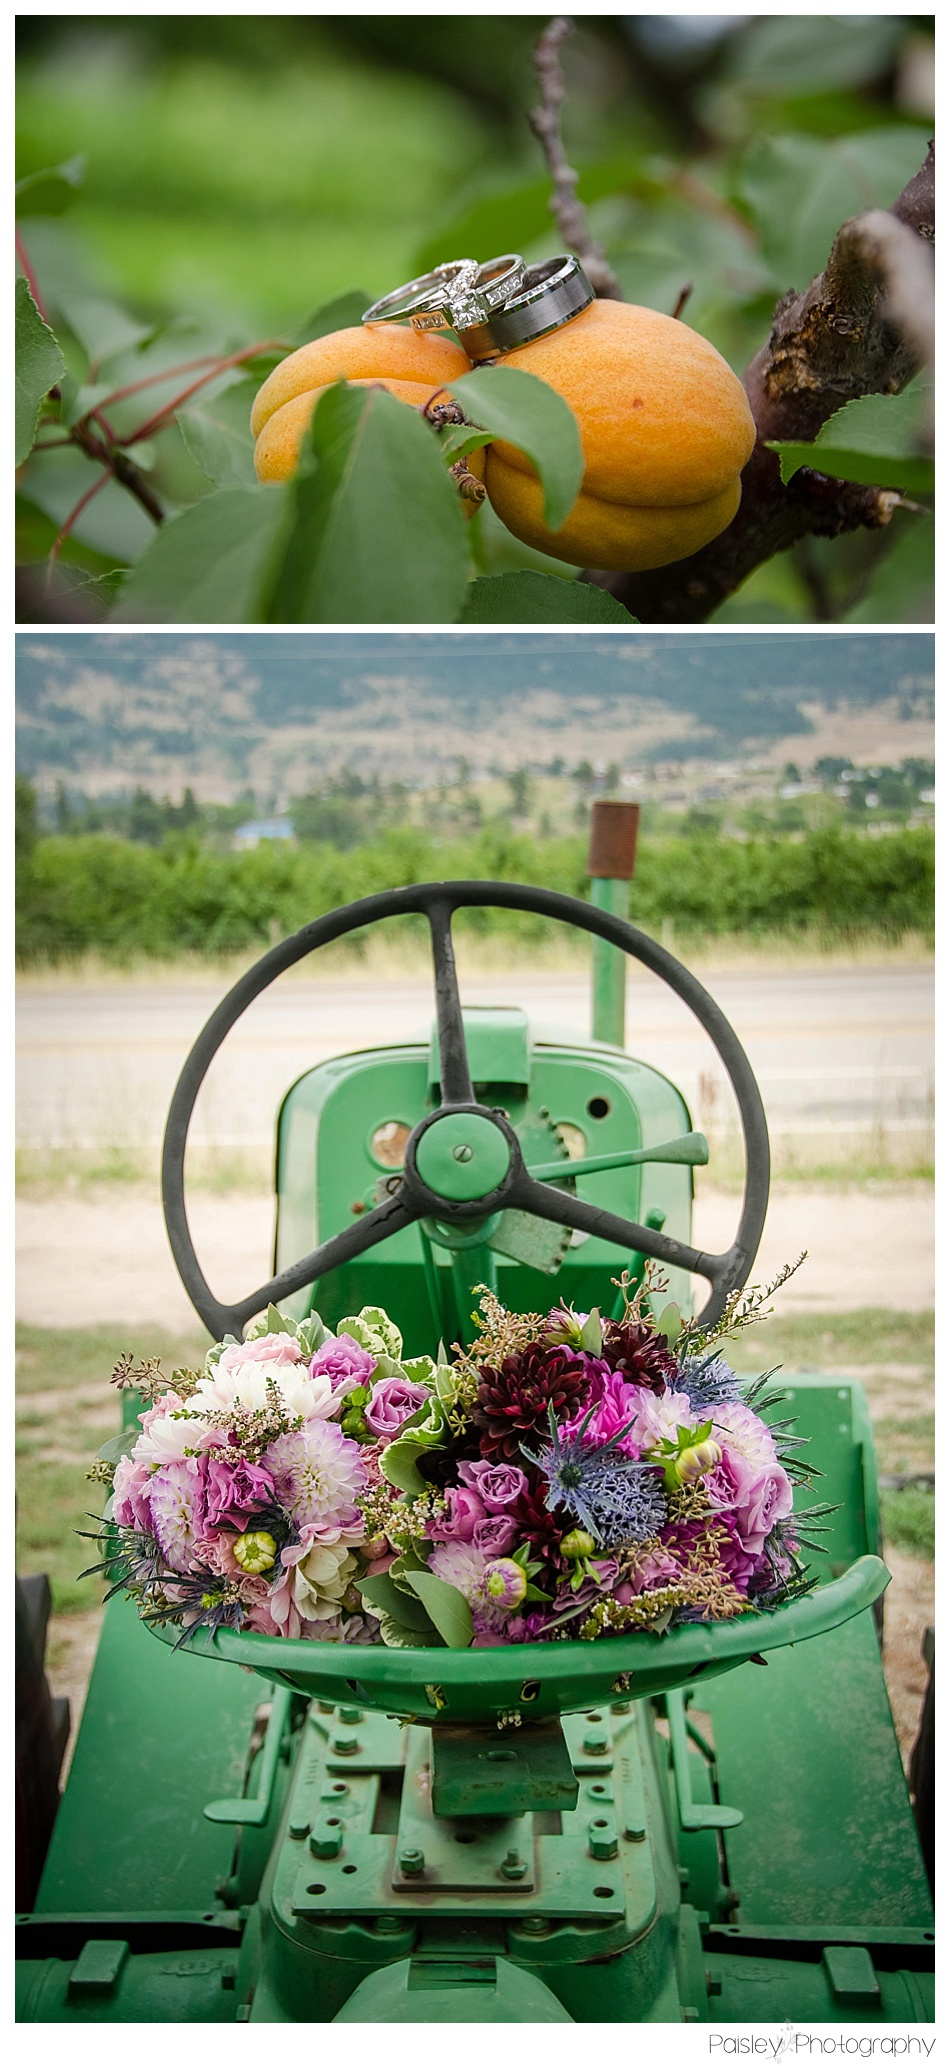 Orchard Wedding, Wedding Rings, Country Chic Wedding Photography, Orchard Wedding Photography, Country Wedding Details, Calgary Wedding Photography, Kelowna Wedding Photographer, Kelowna Wedding, Vernon Wedding Photographer, Okanagan Wedding Photographer